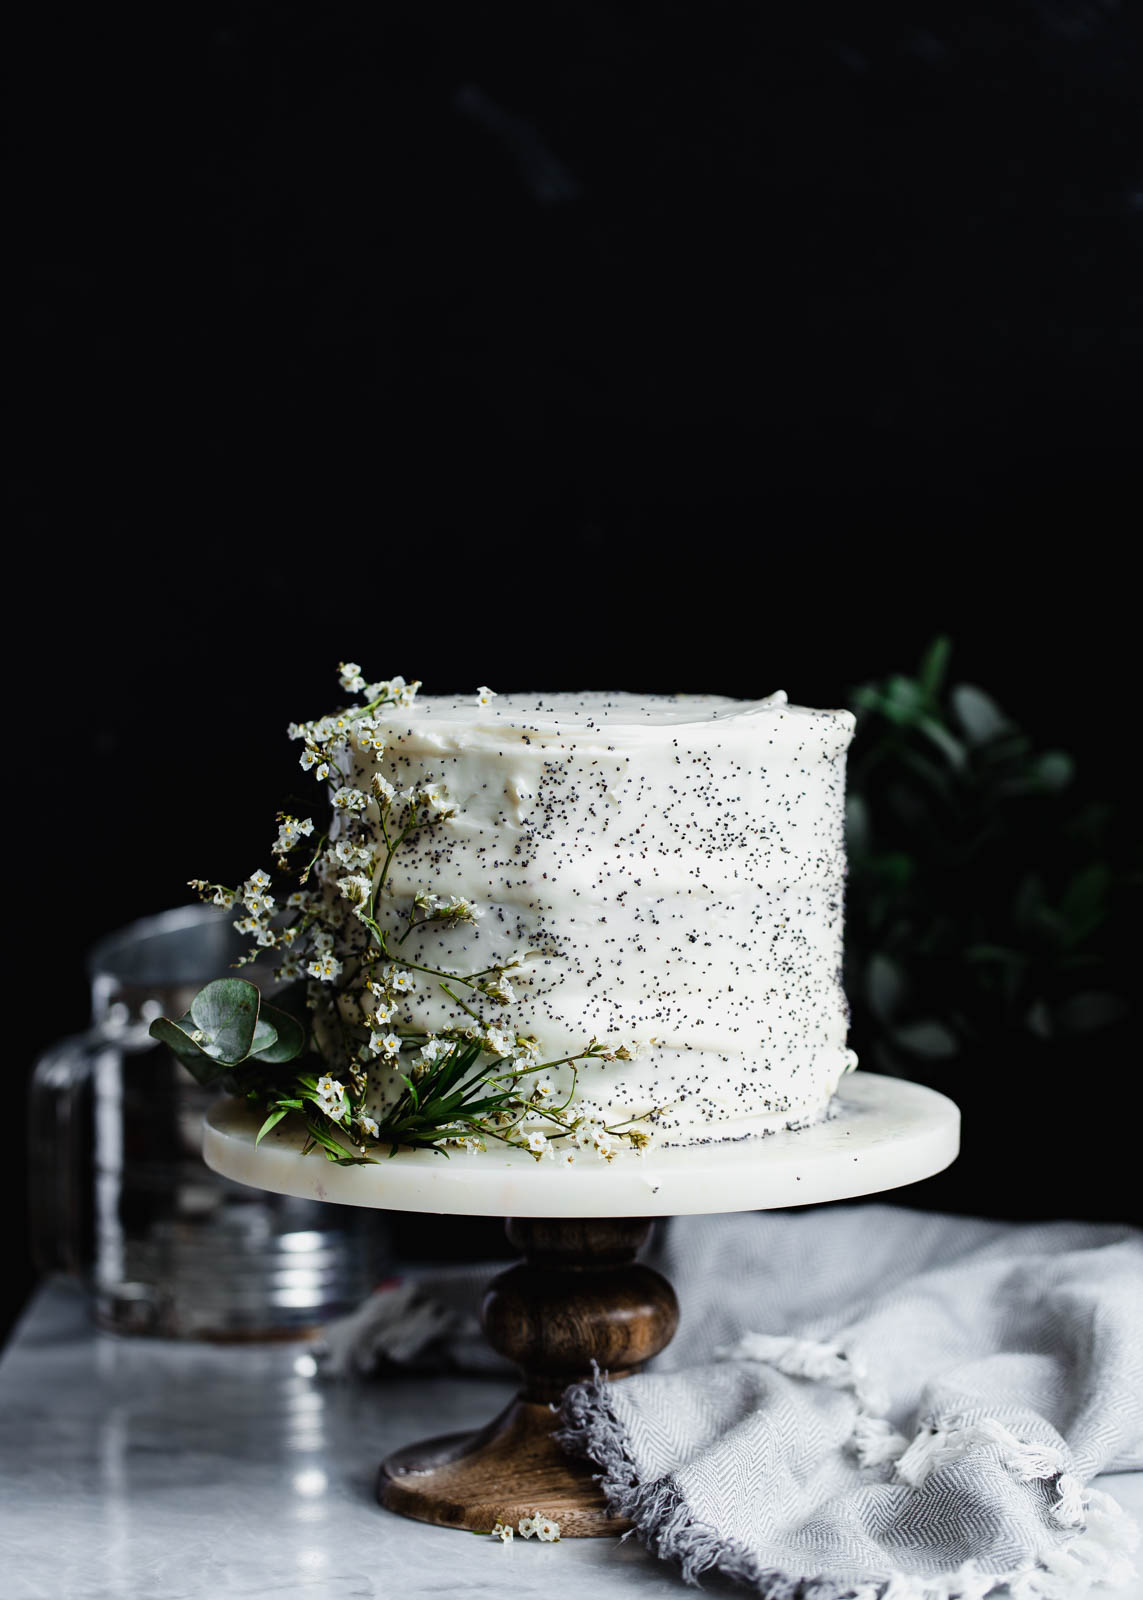 lemon poppy seed cake with flowers